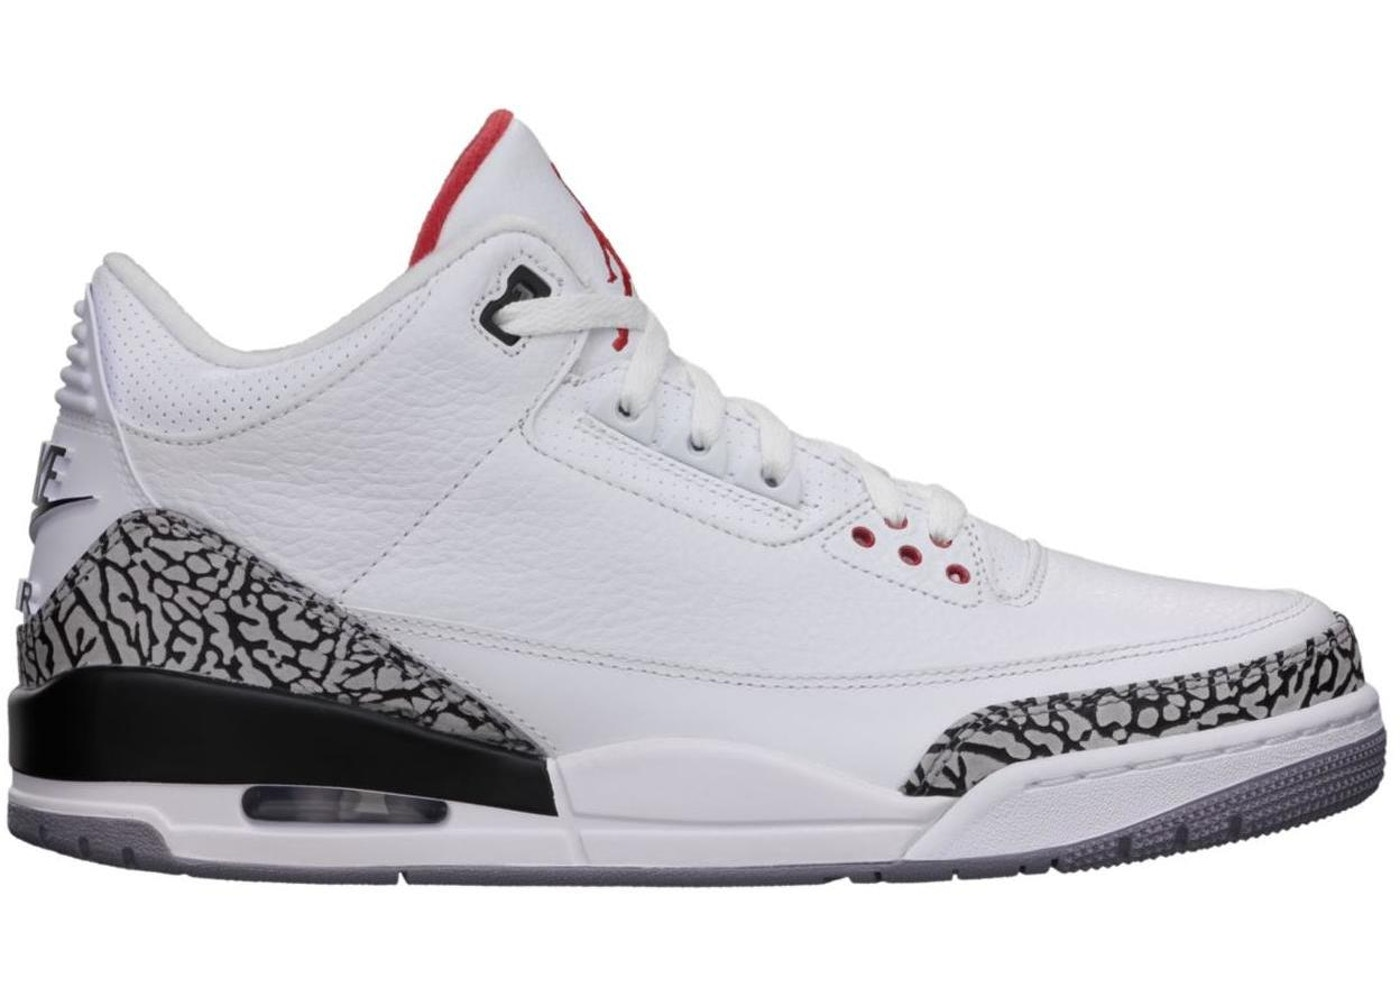 d170225cef1a Buy Air Jordan 3 Shoes   Deadstock Sneakers